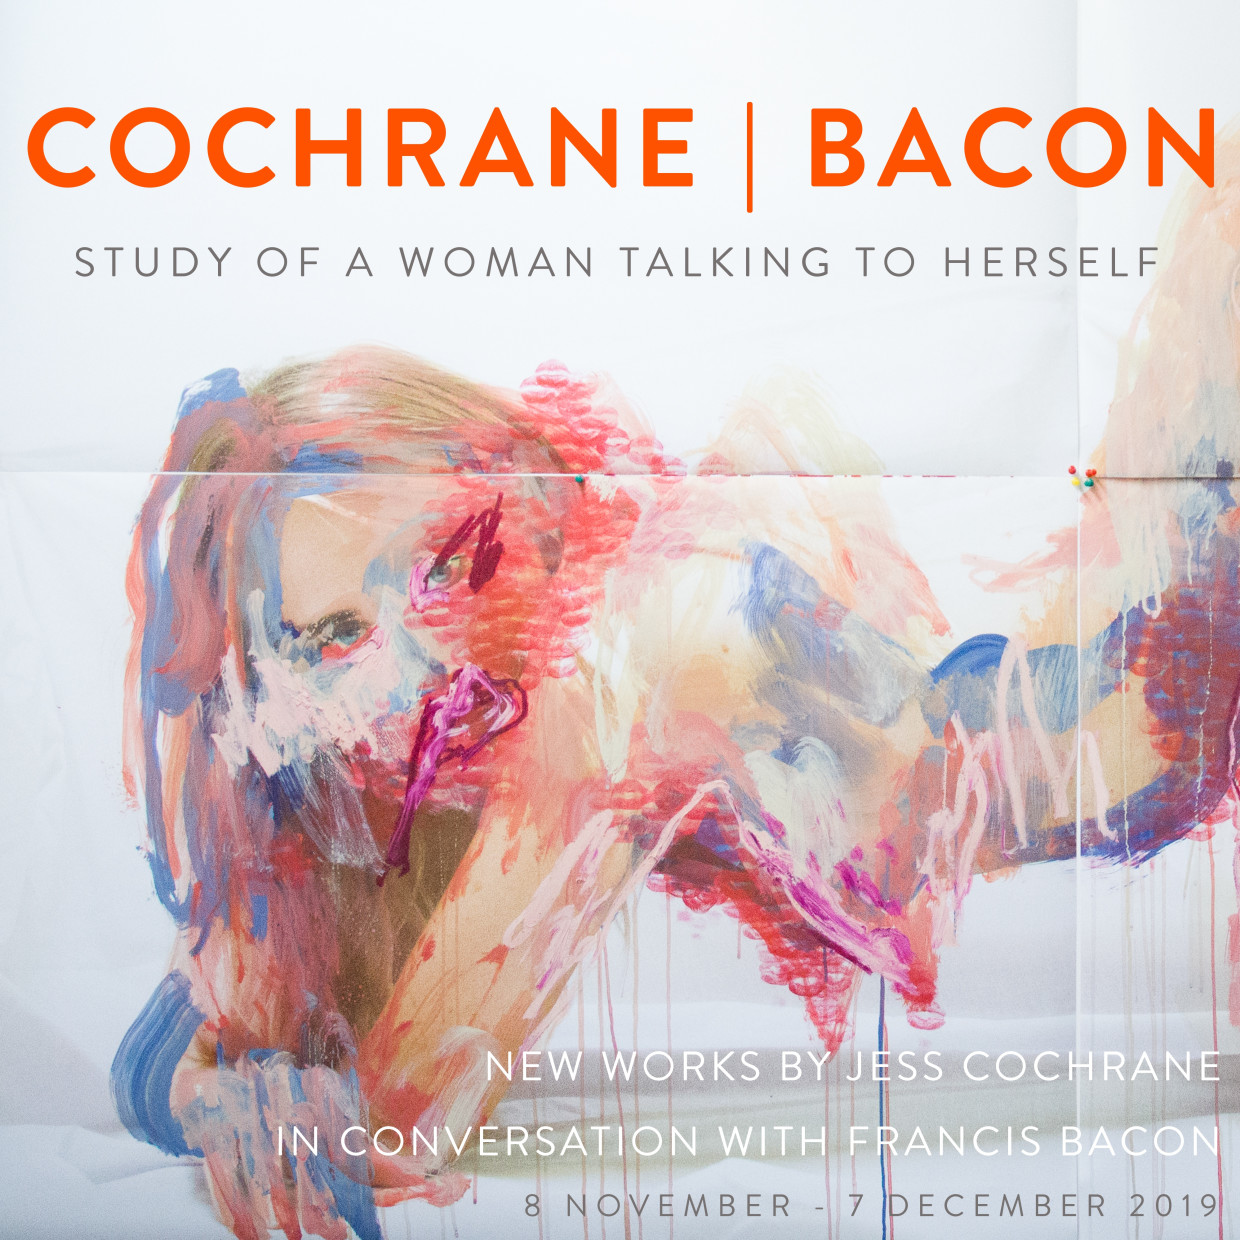 Study of a Woman Talking to Herself: Cochrane | Bacon